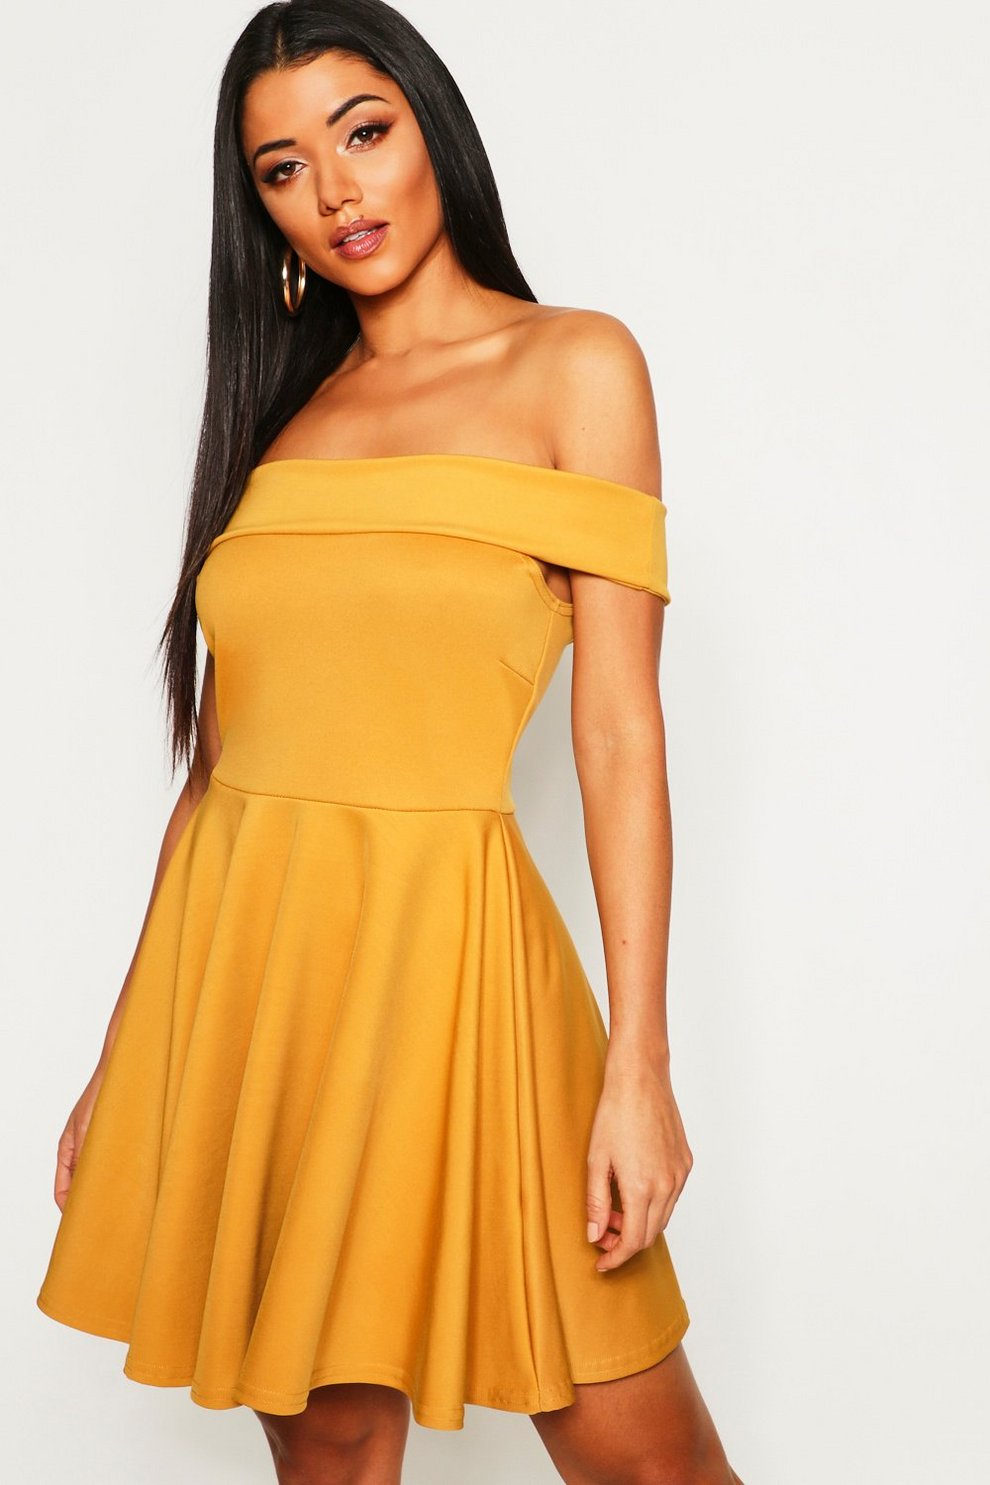 Off The Shoulder Skater Dress  86cc79cfb